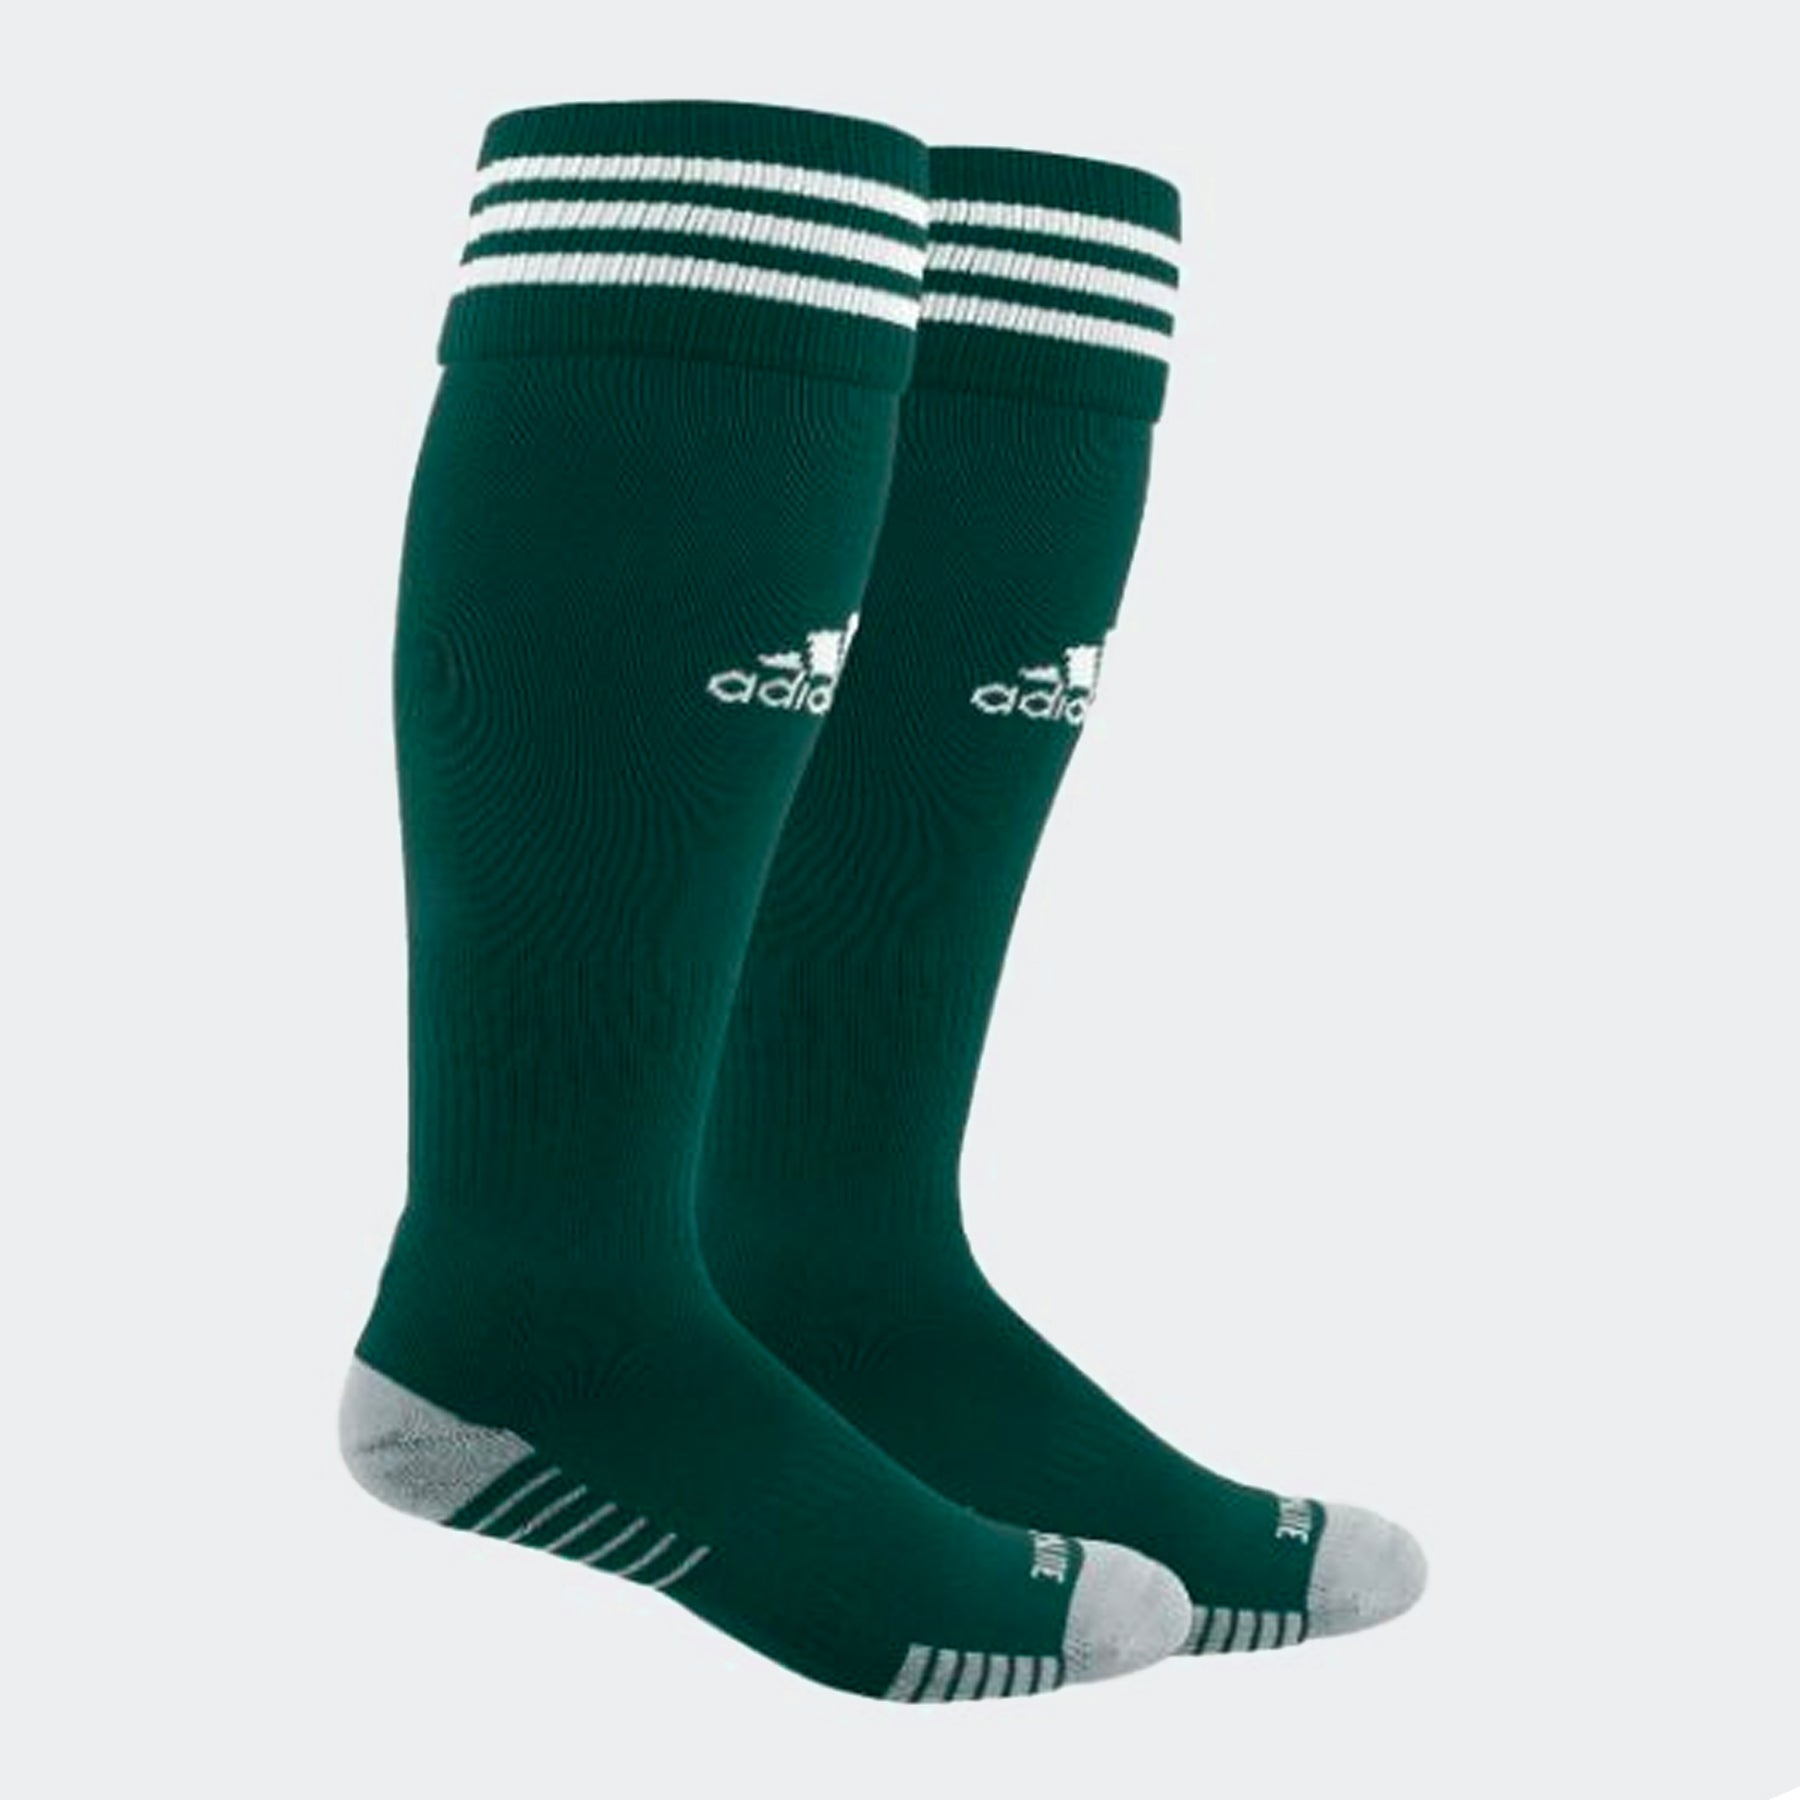 Adidas Copa Zone Cushion Iv Sock - Green/White